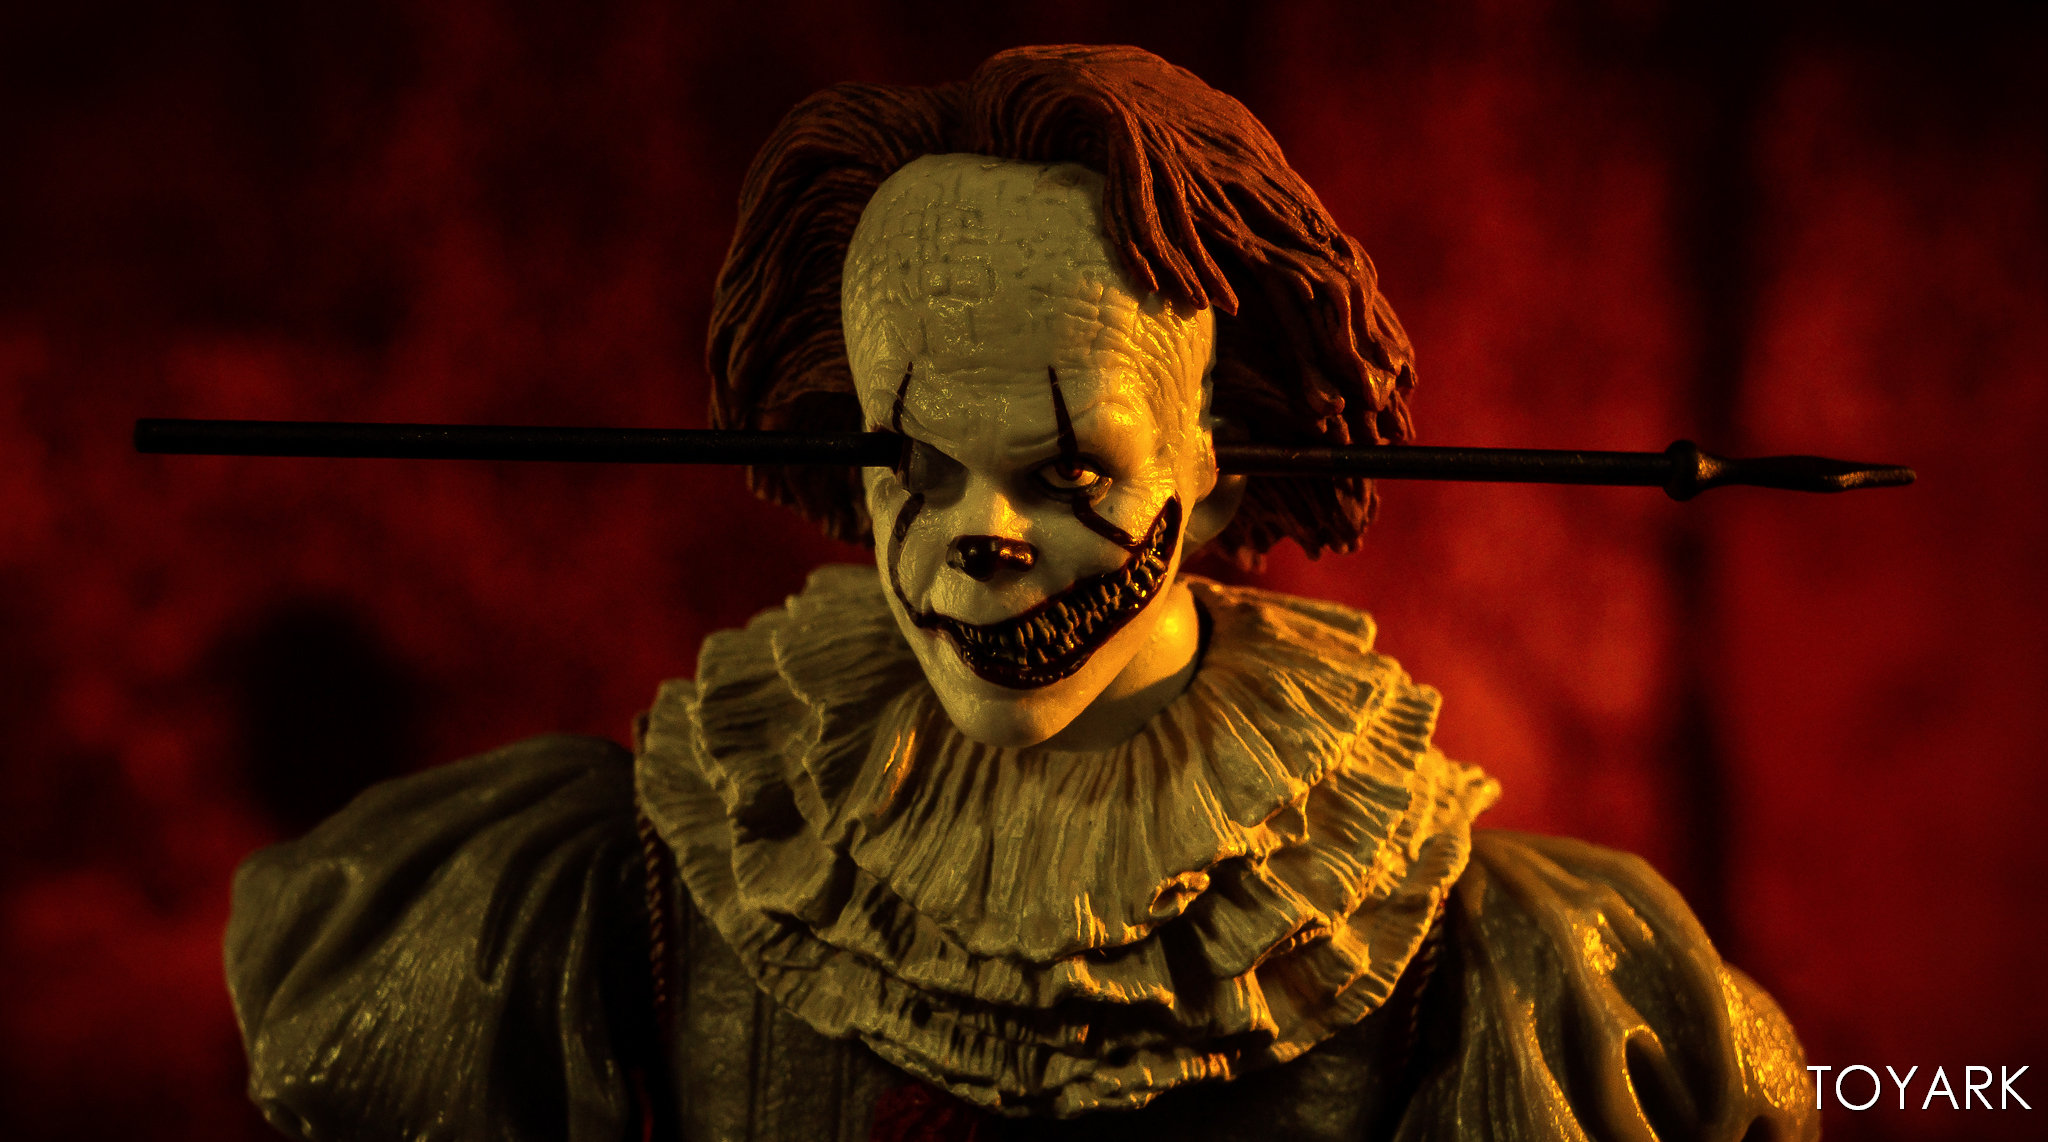 https://news.toyark.com/wp-content/uploads/sites/4/2019/03/Well-House-Pennywise-Gallery-020.jpg